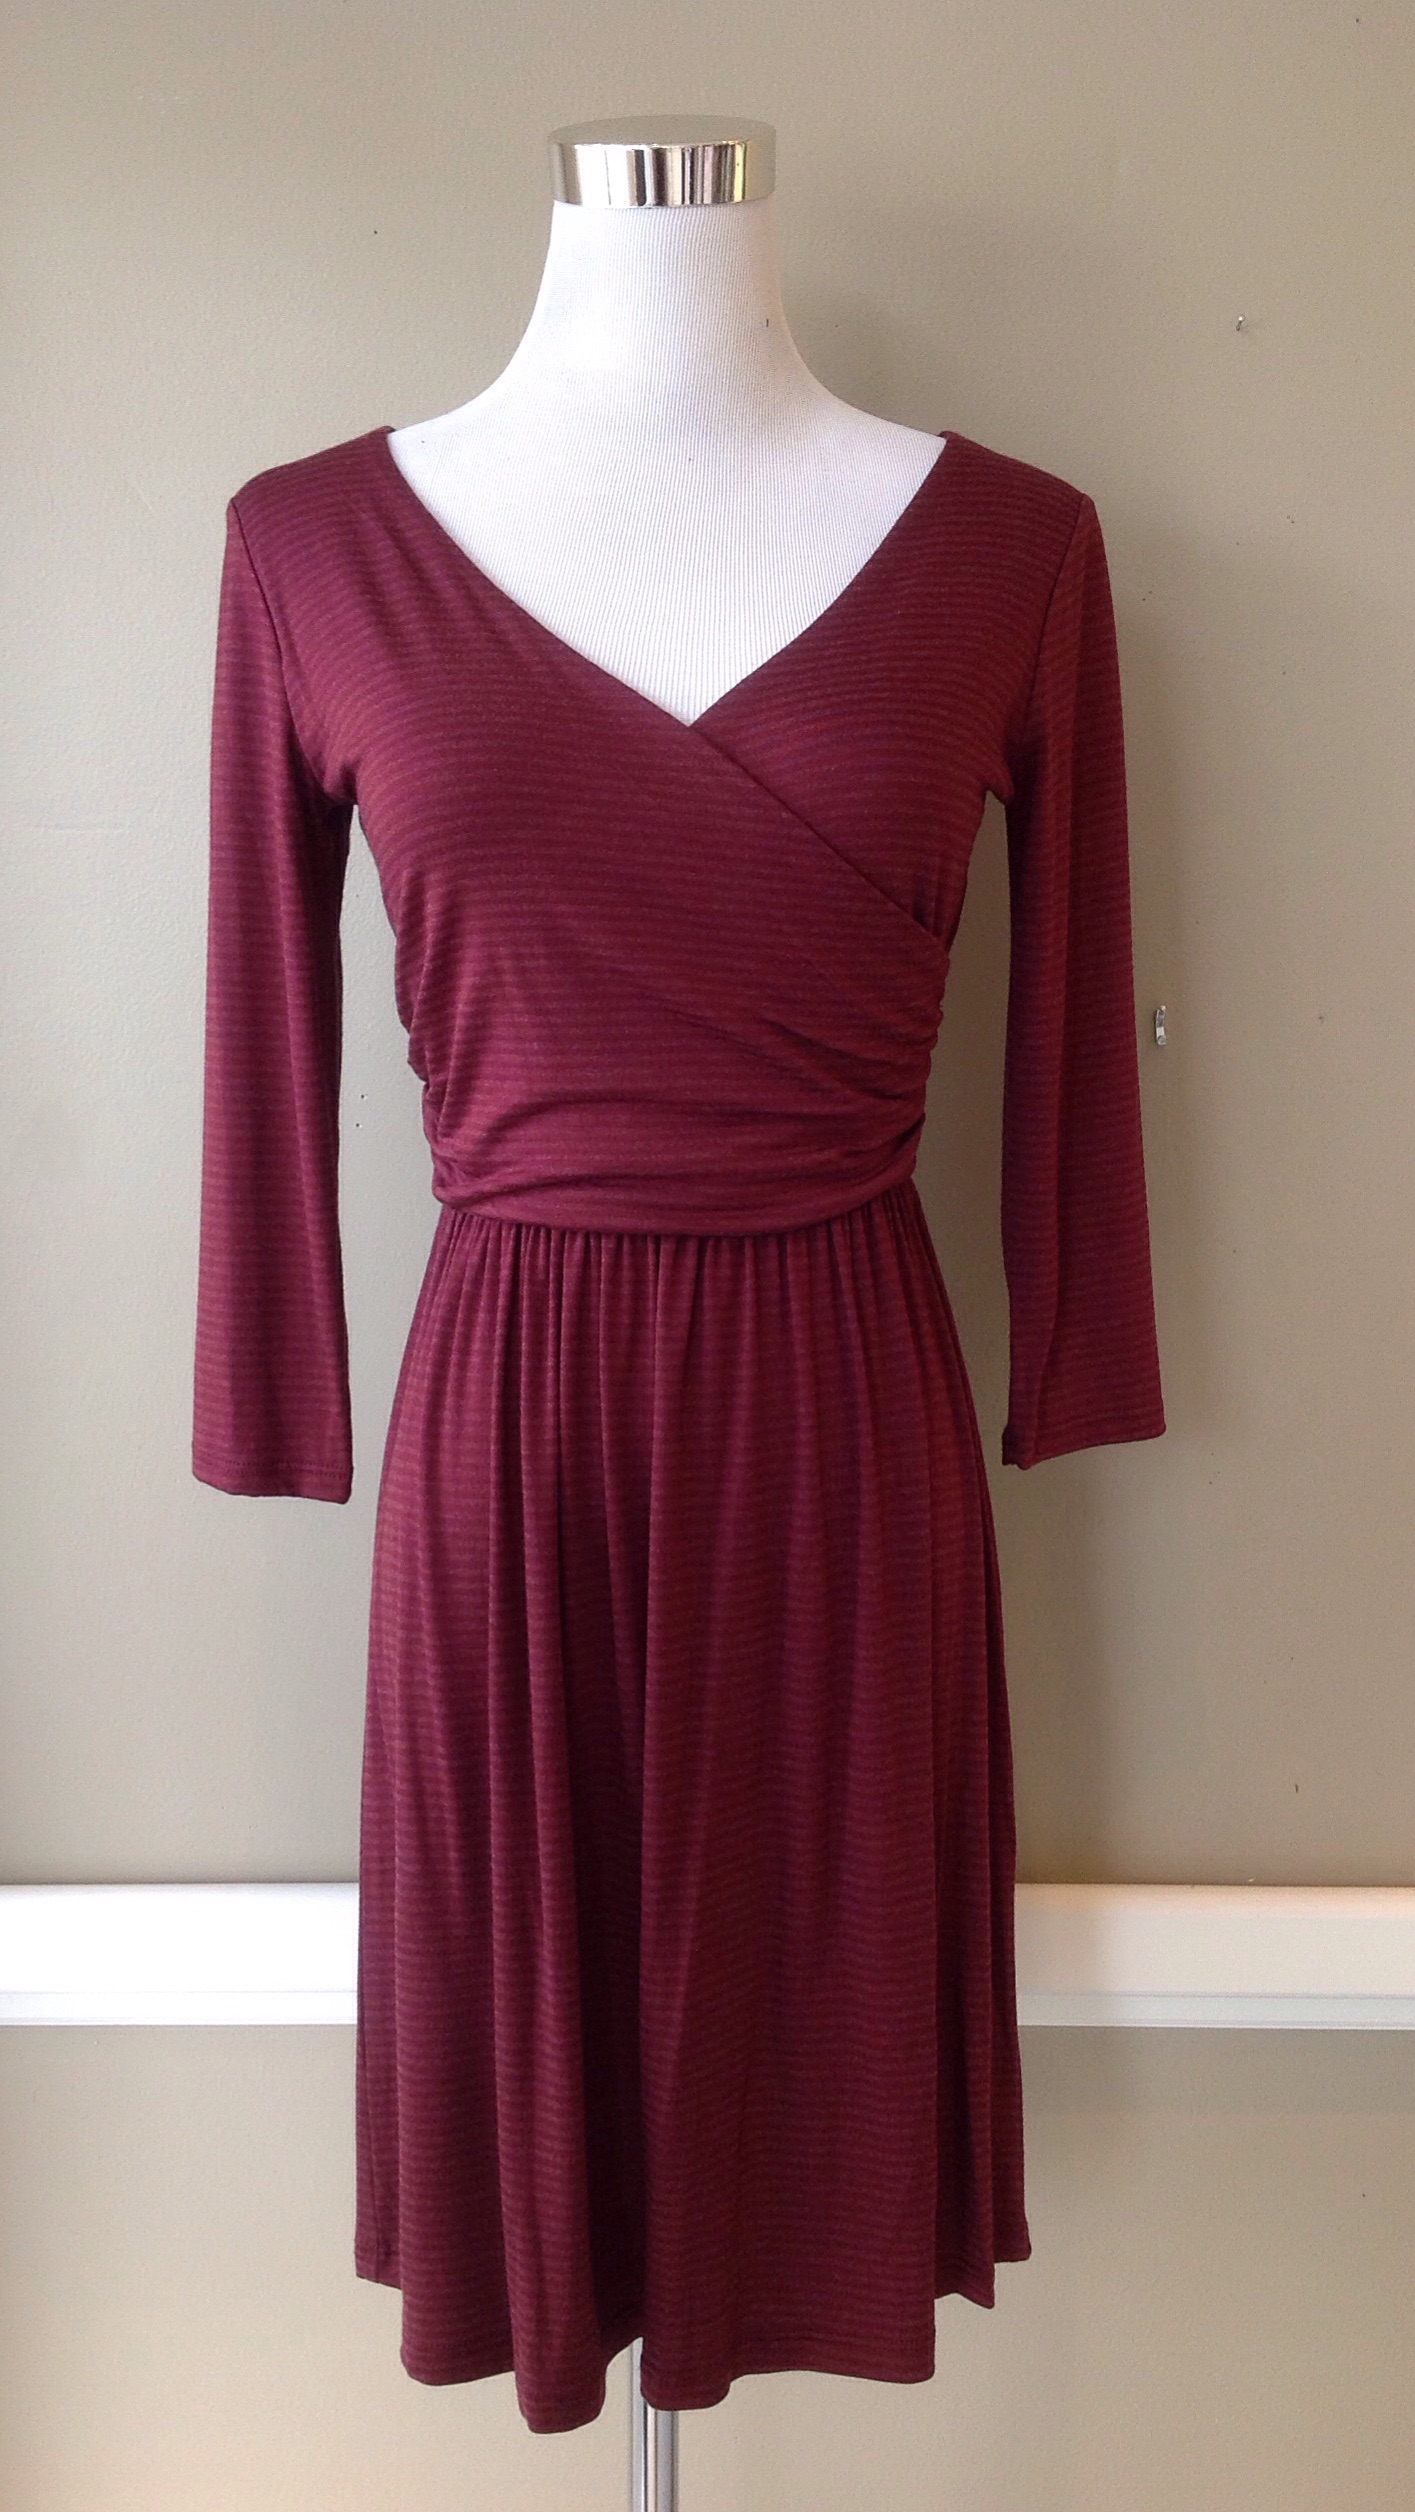 Subtle stripe, wrap-style dress in burgundy